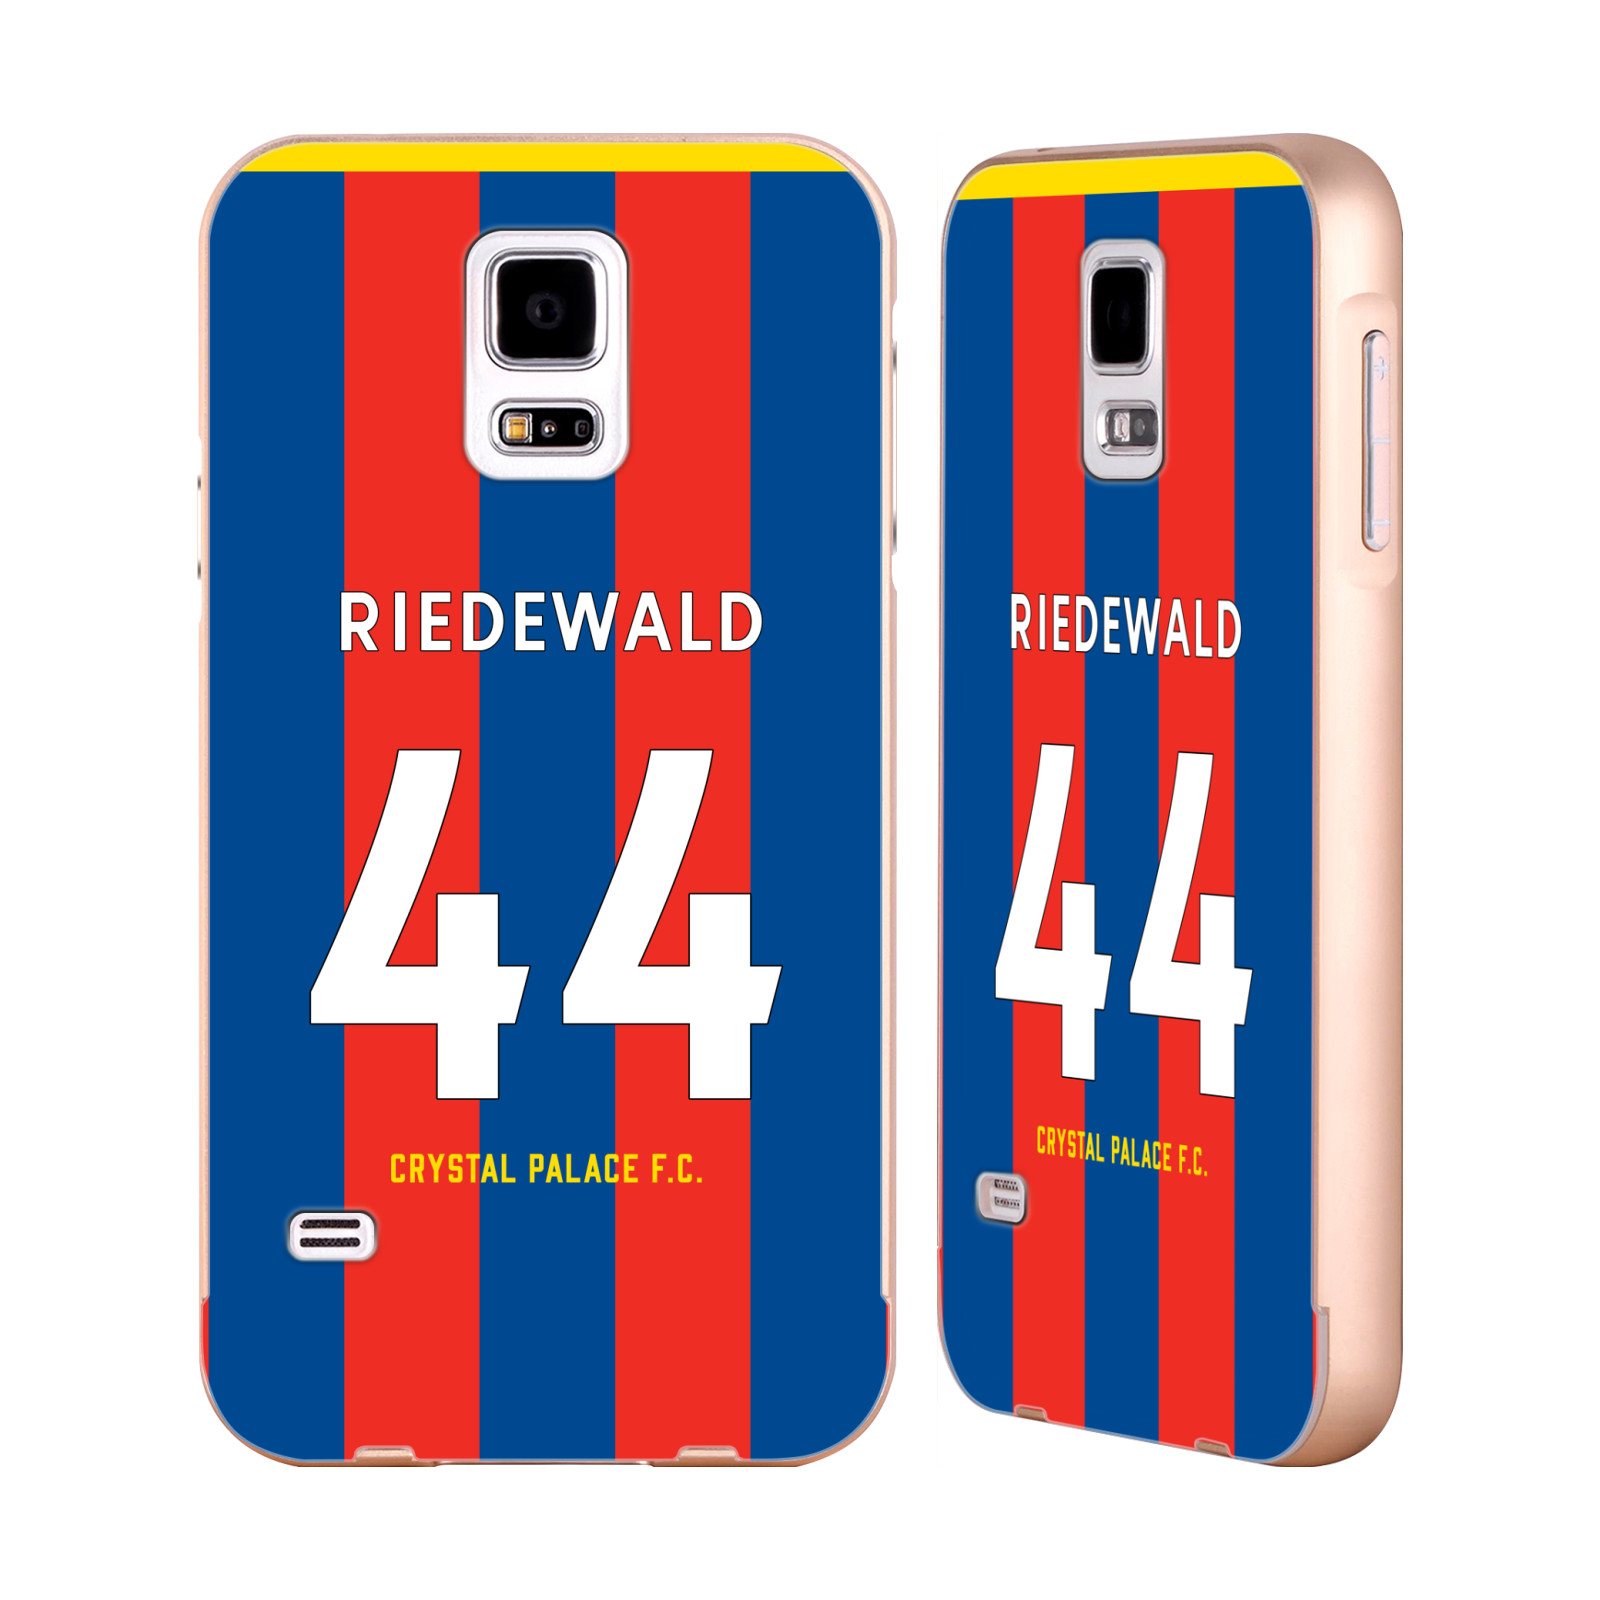 CRYSTAL-PALACE-FC-2017-18-PLAYERS-HOME-KIT-2-GOLD-SLIDER-CASE-FOR-SAMSUNG-PHONES